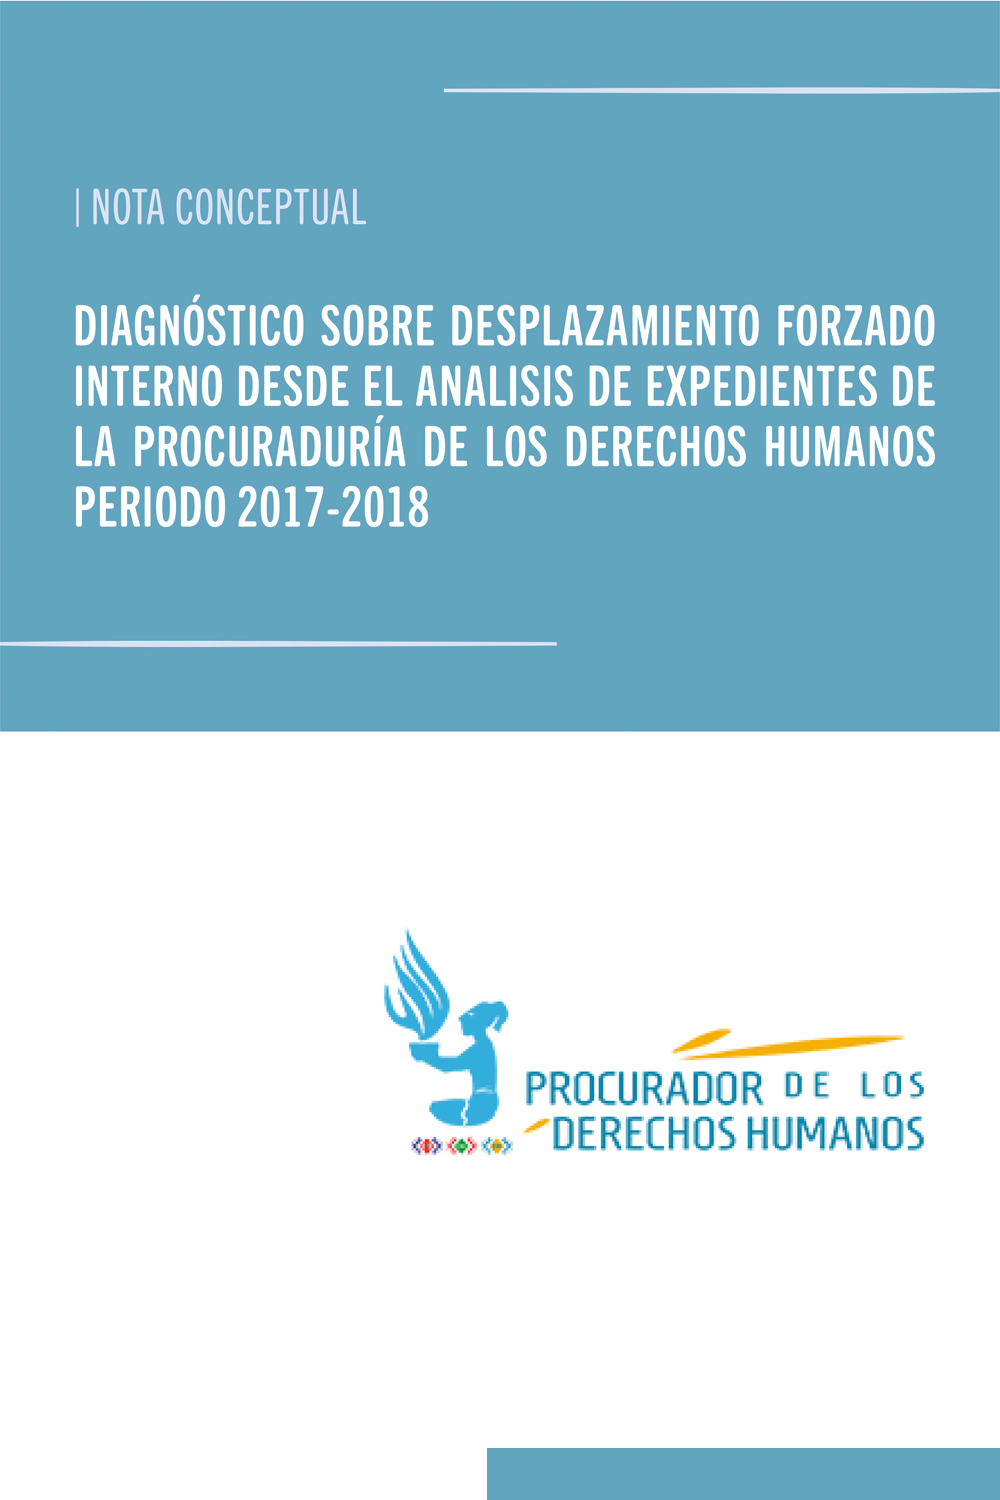 REPORT: FORCED DISPLACEMENT PDH GUATEMALA (2017-2018)